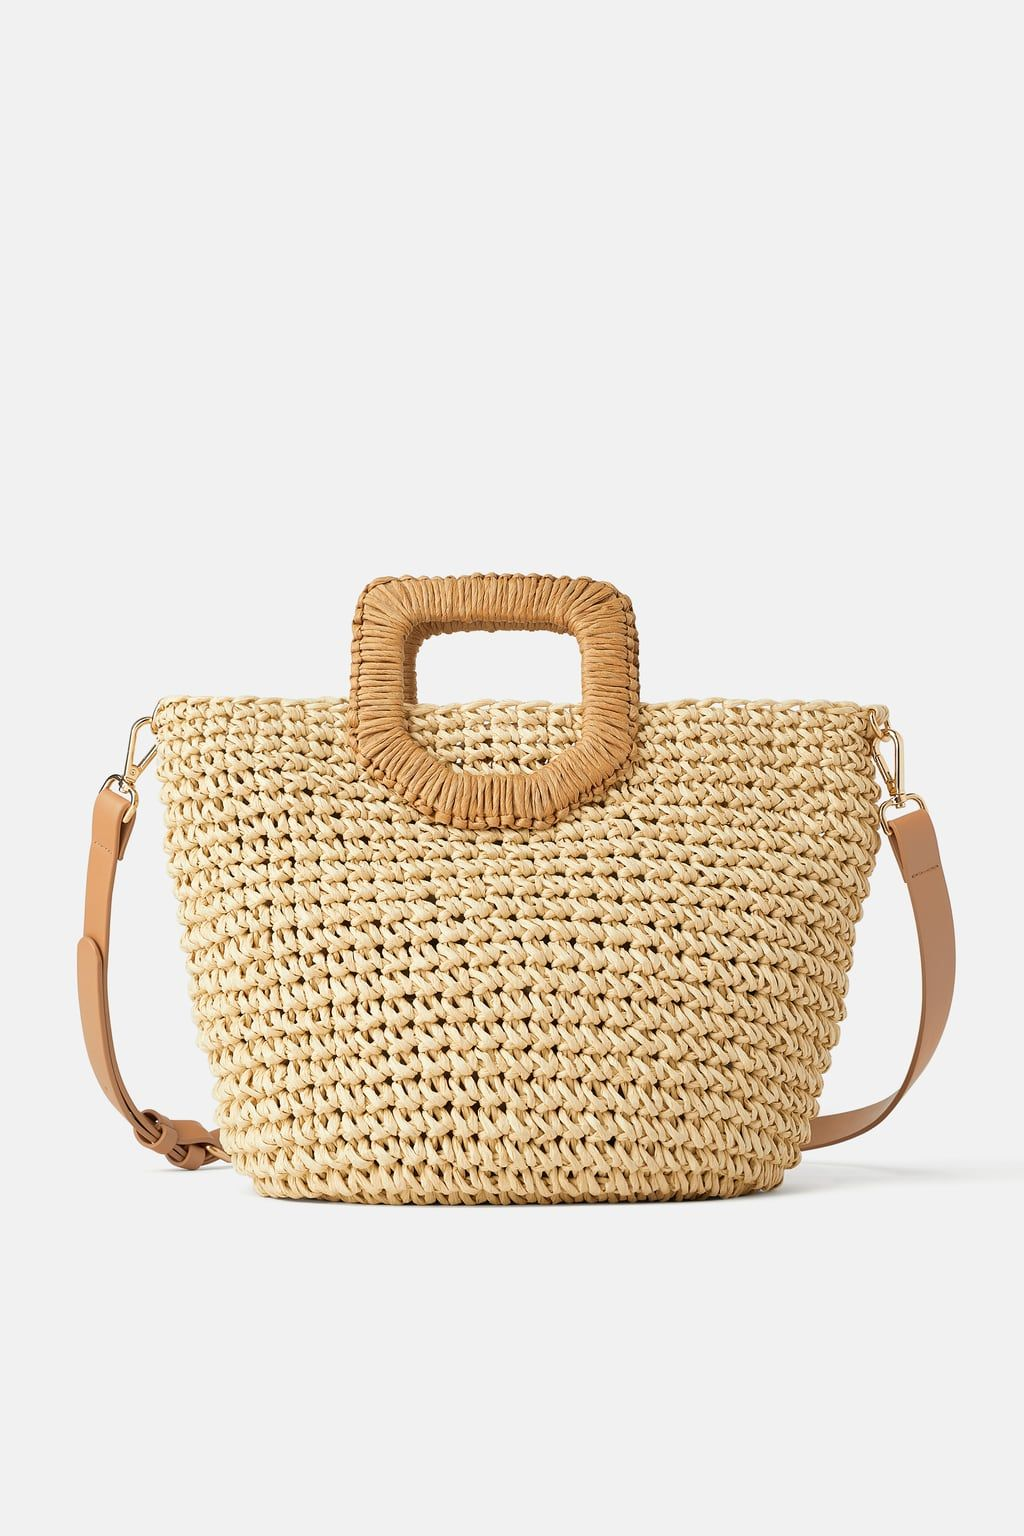 Braided Paper Basket Bag Basket Bag Paper Basket Bags